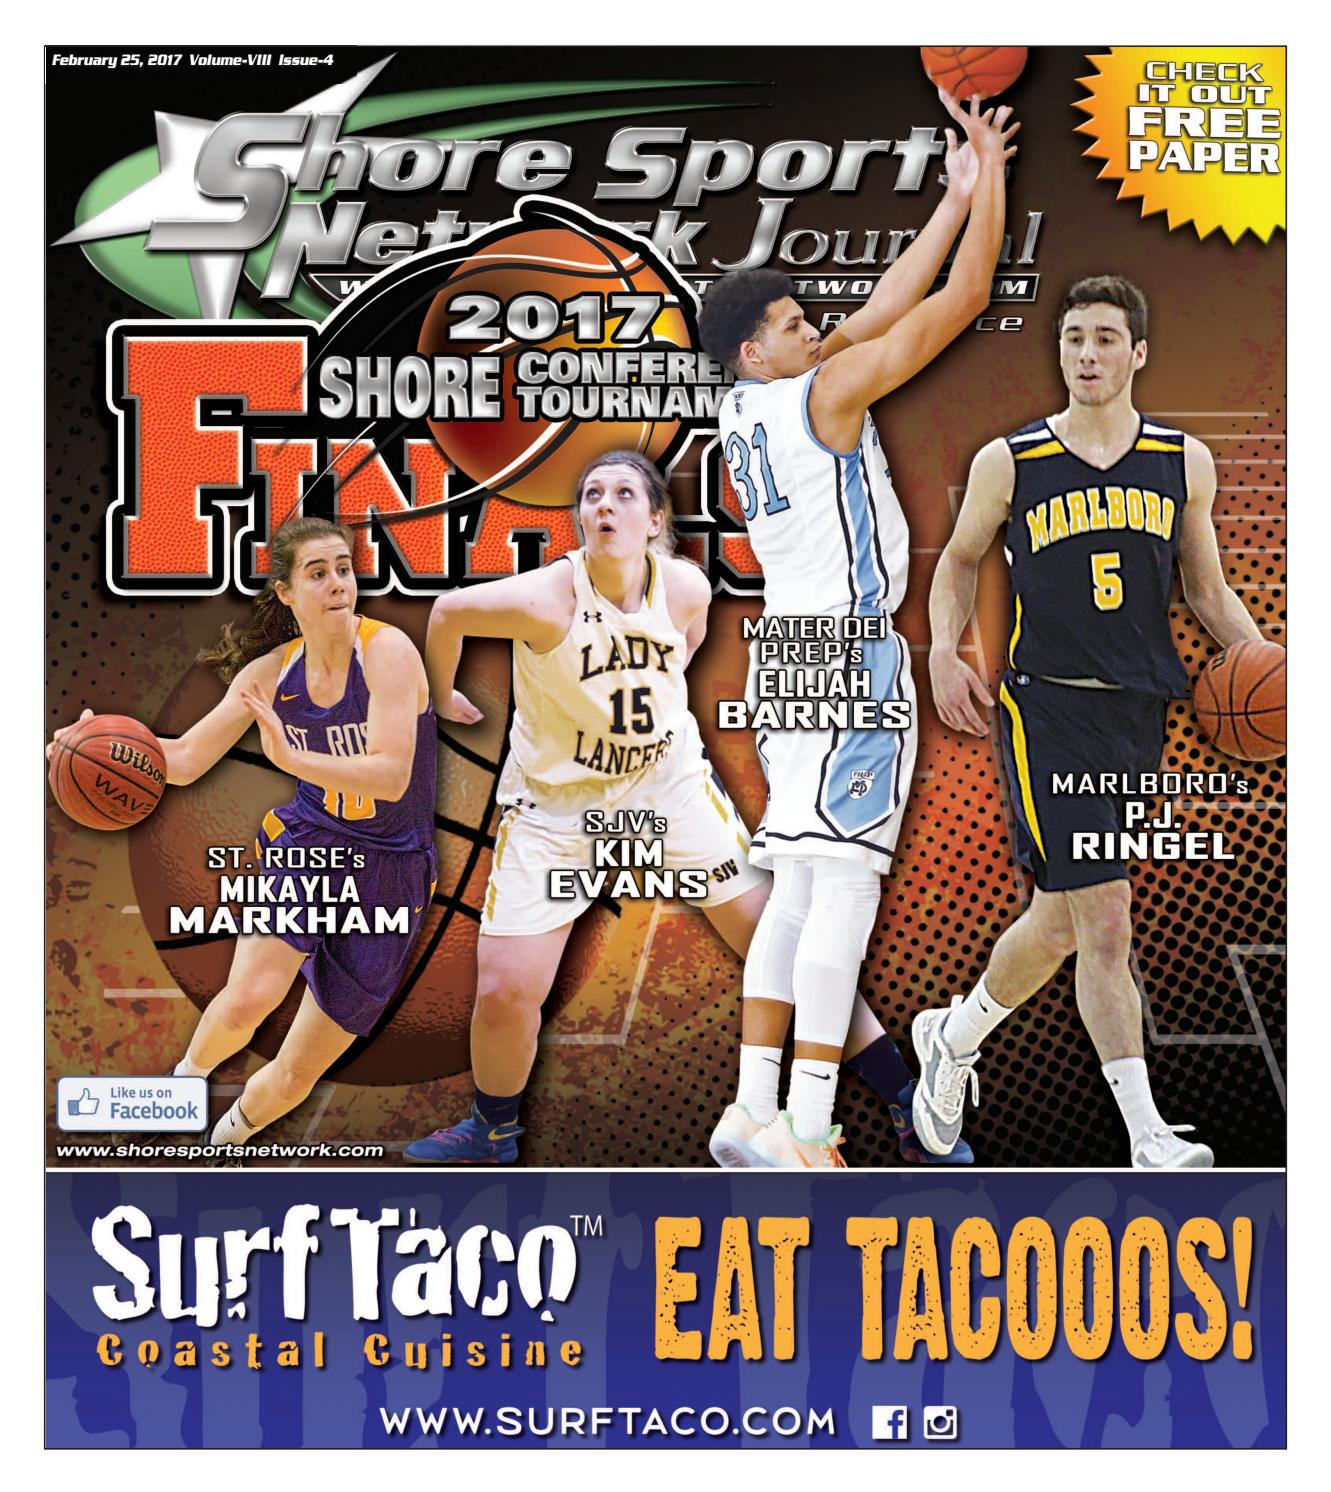 389d4af7e 2-25-17 Issue - 4 Volume IX Shore Sports Network Journal by Shore Sports  Network Journal - issuu